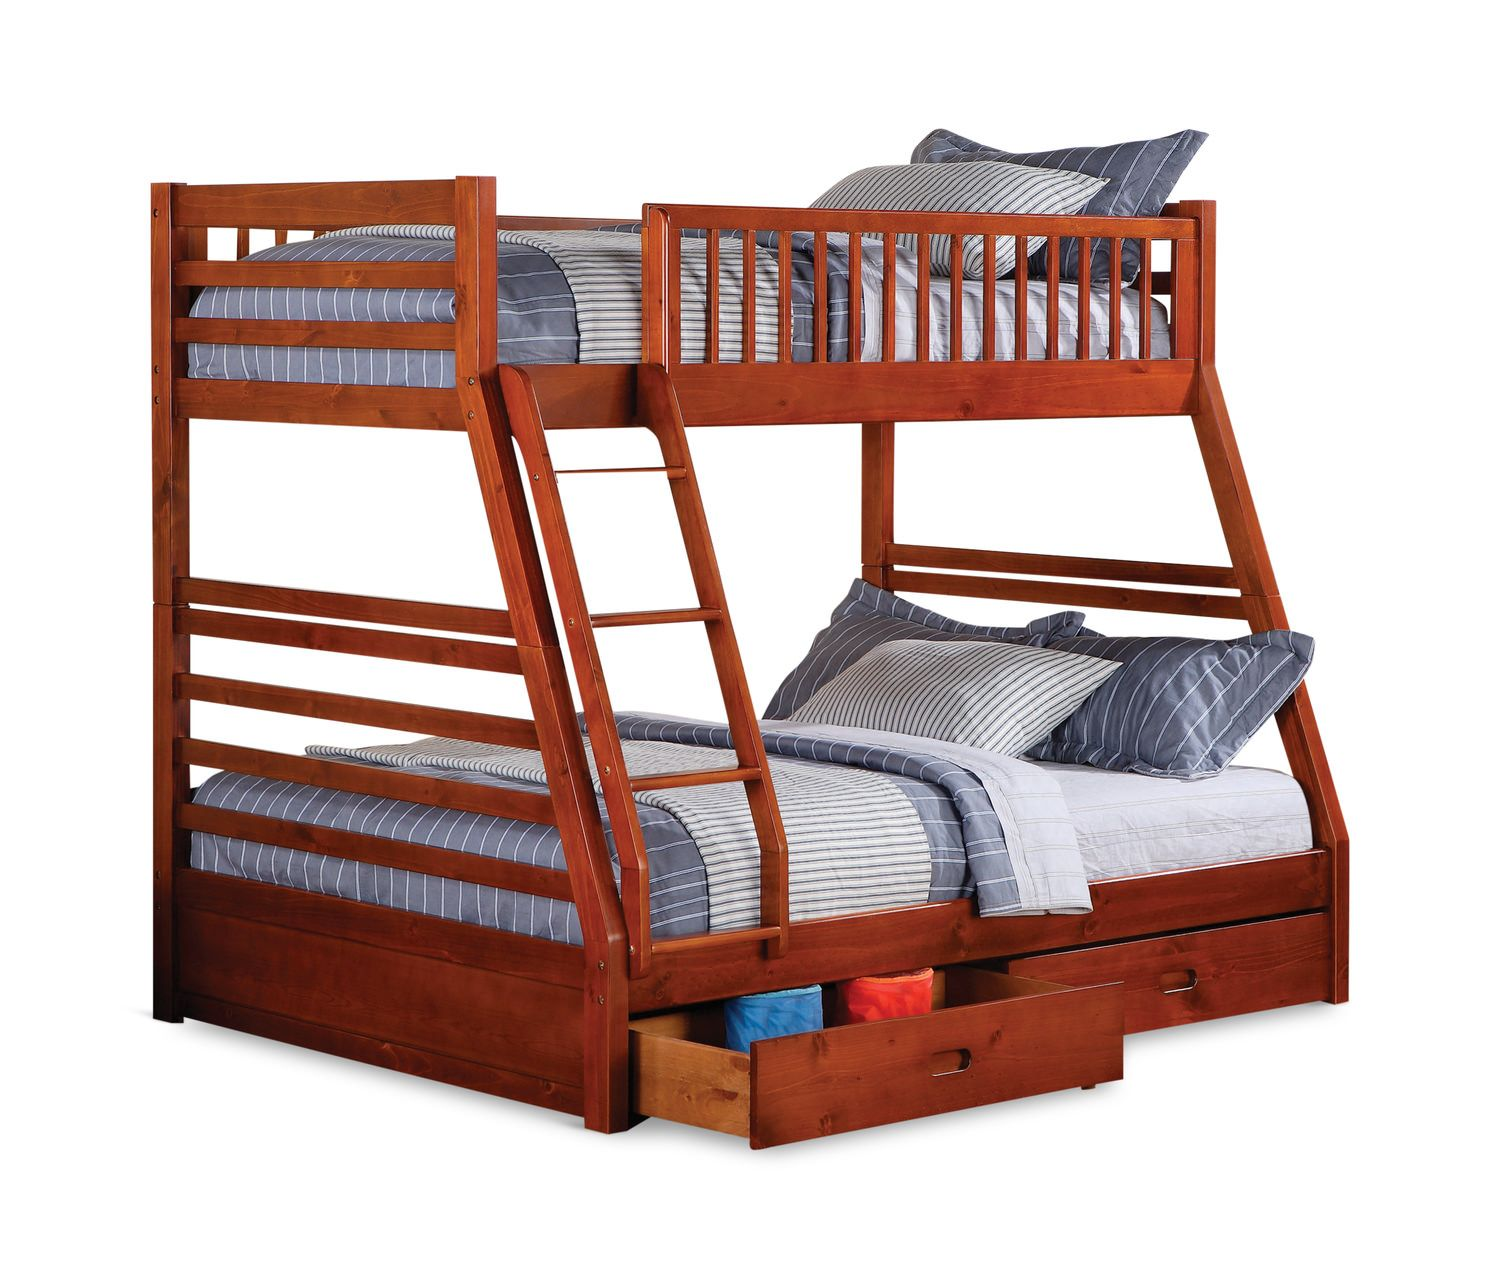 Twin over full loft bed with stairs   Lakeview Twin over Full Bunk Bed  Magnolia house  Pinterest